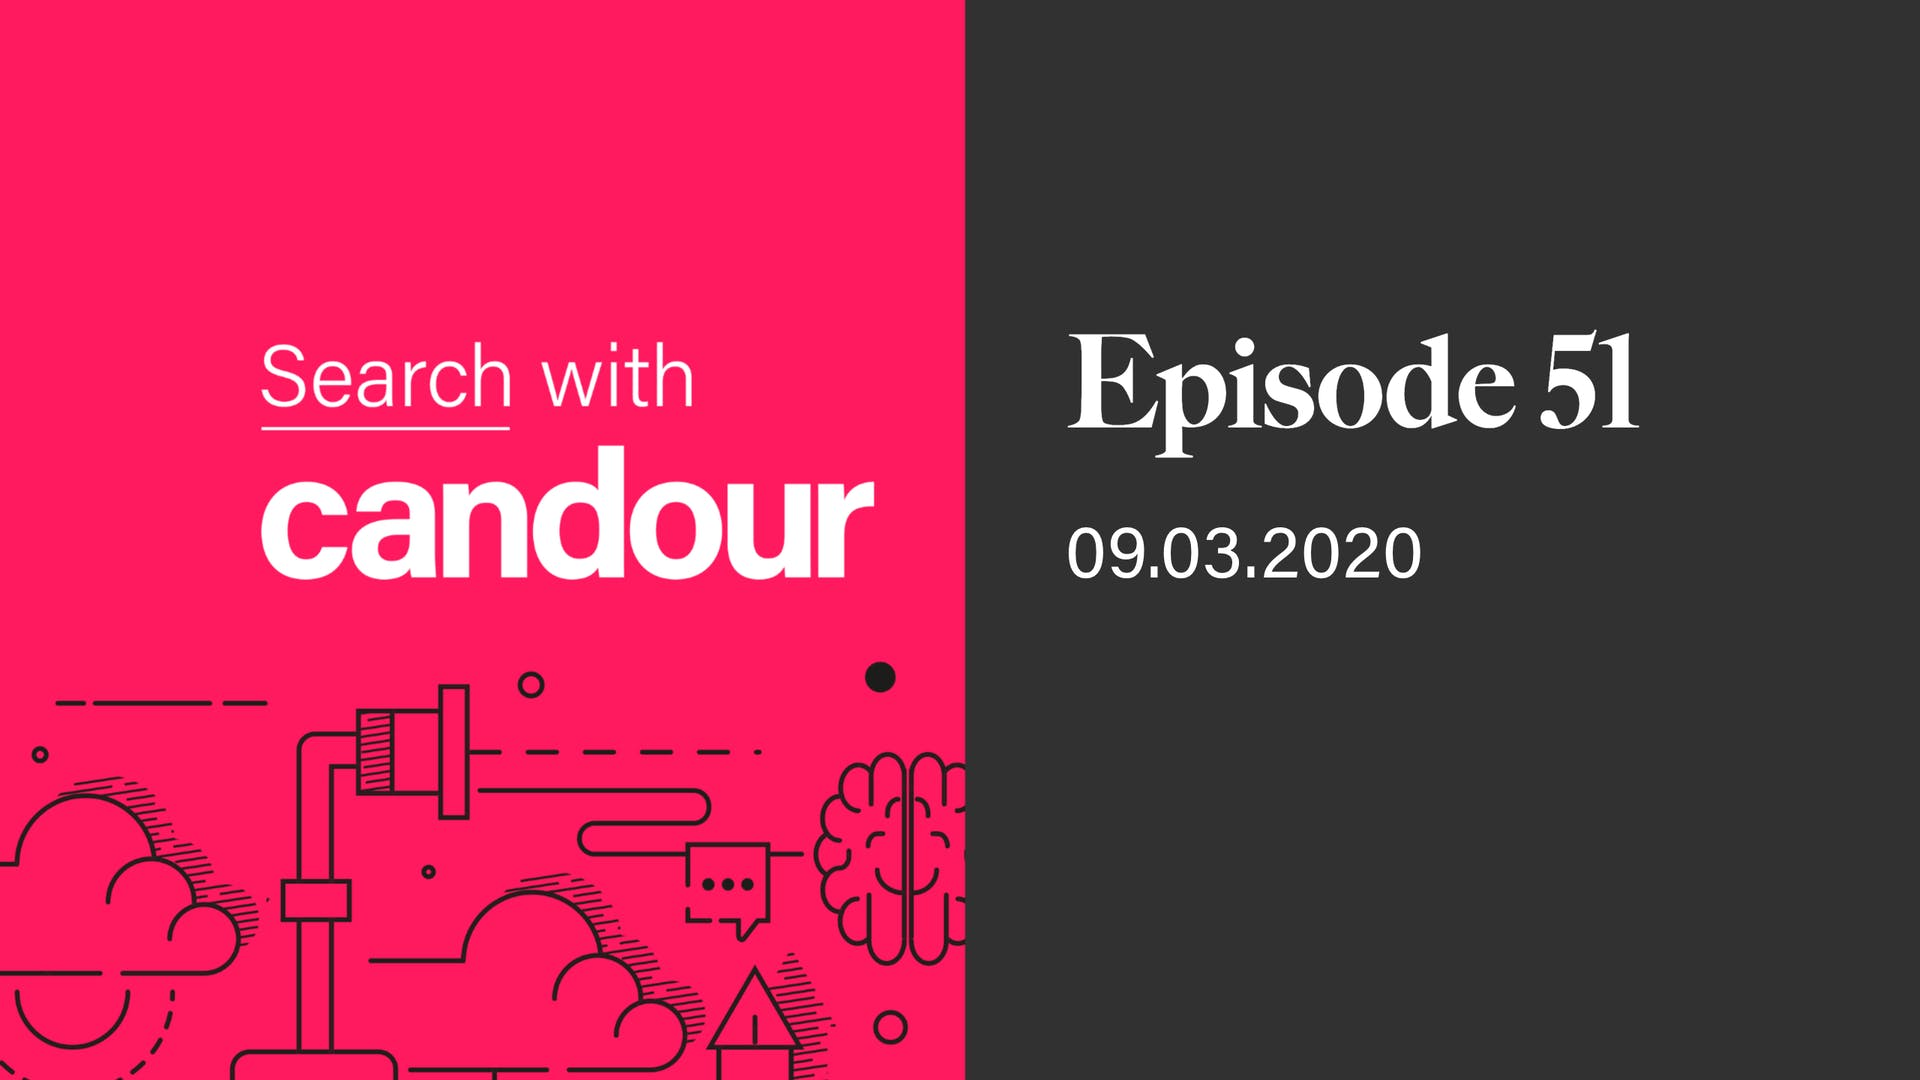 Search with Candour episode 51